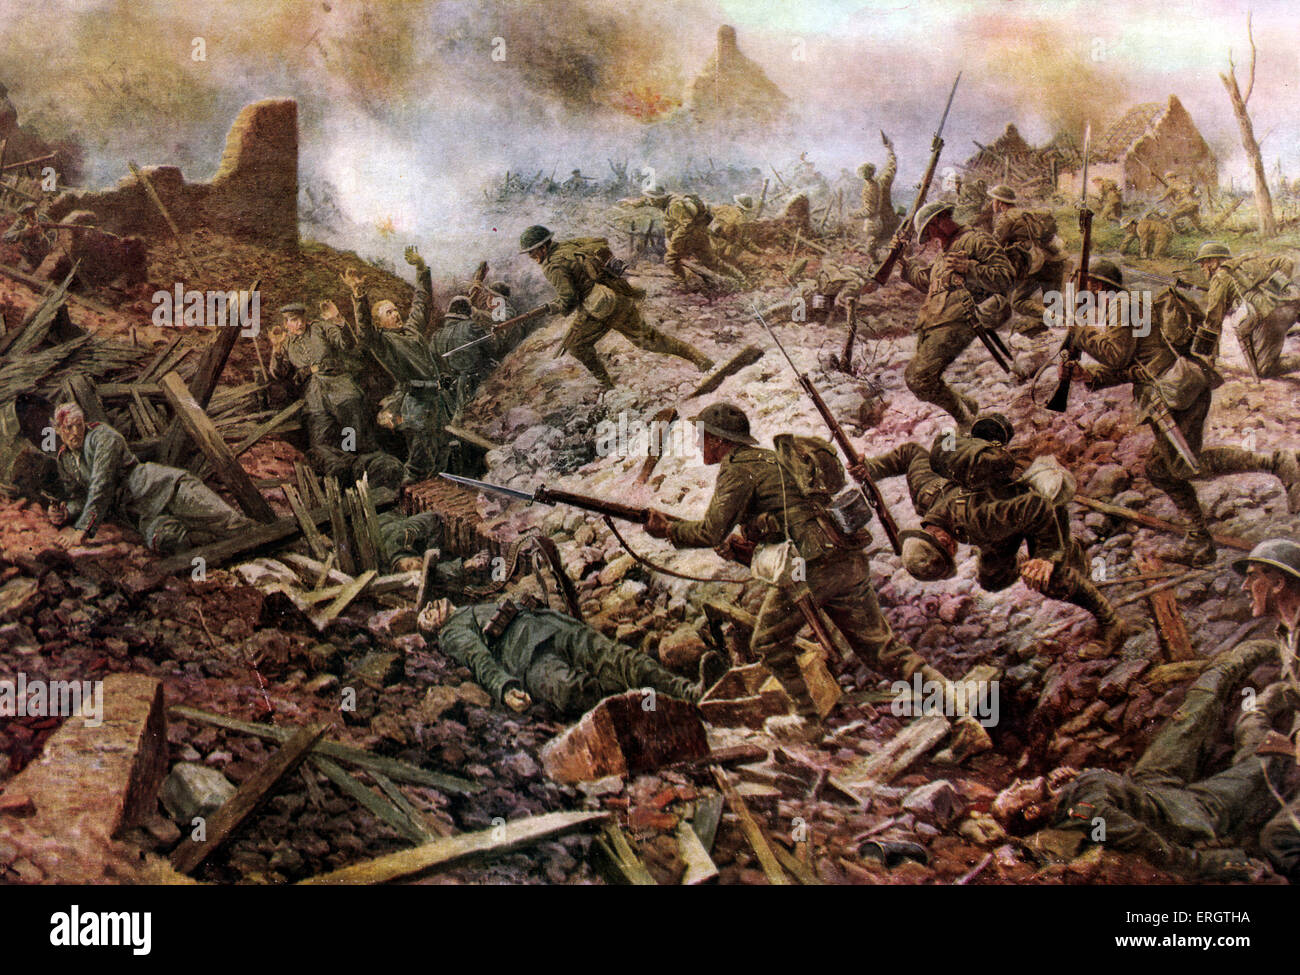 The London Territorials at Pozières during the Battle of the Somme, 1916. In The Great War From a painting - Stock Image